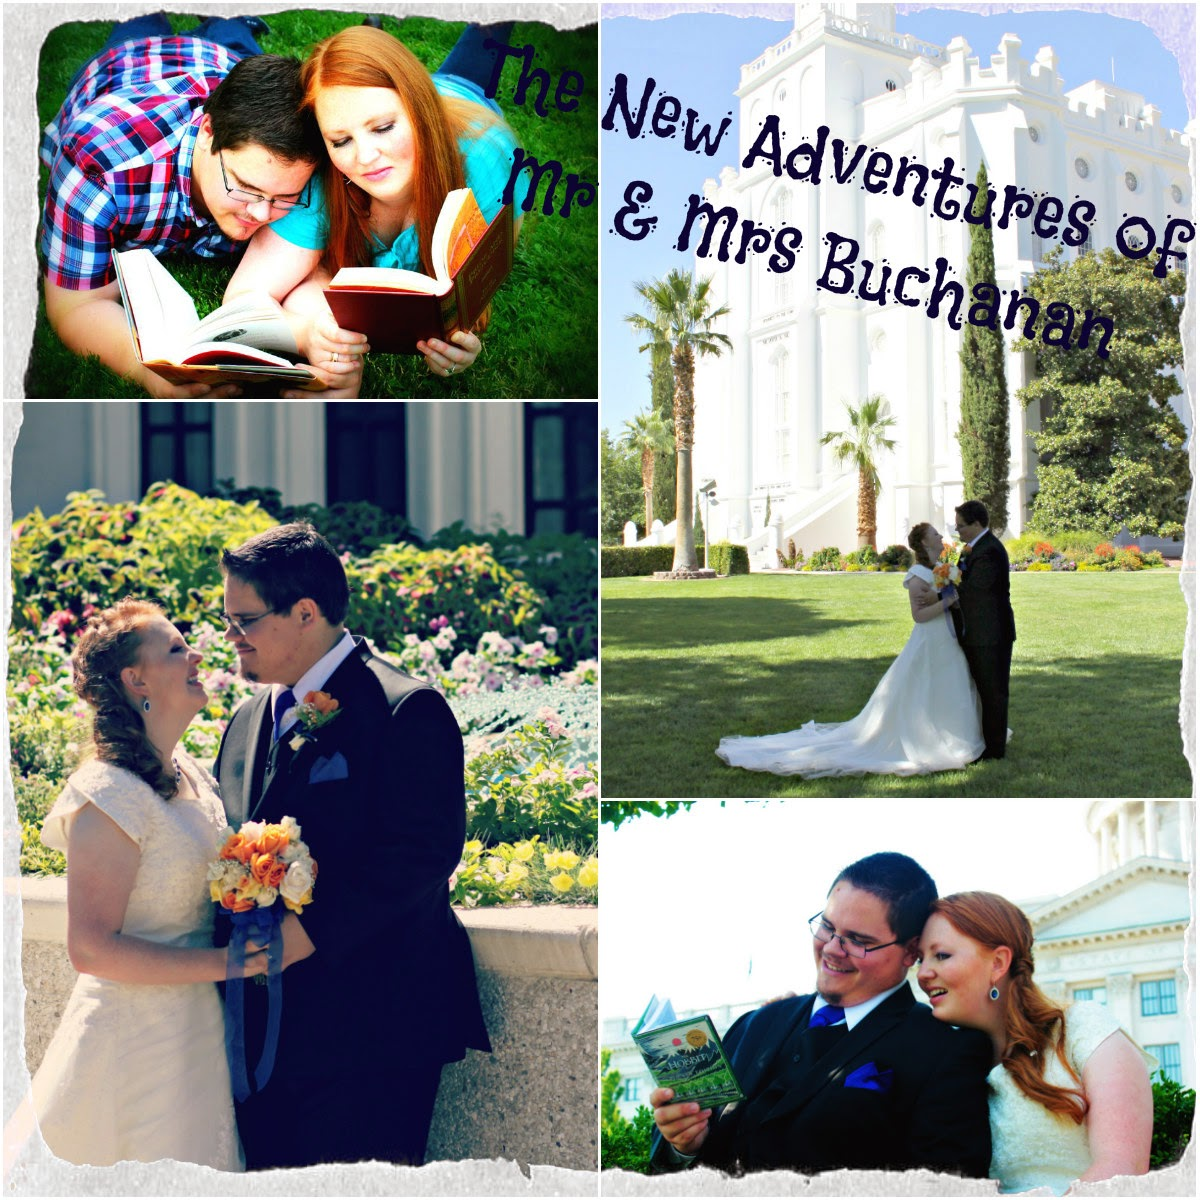 The New Adventures of Mr & Mrs Buchanan